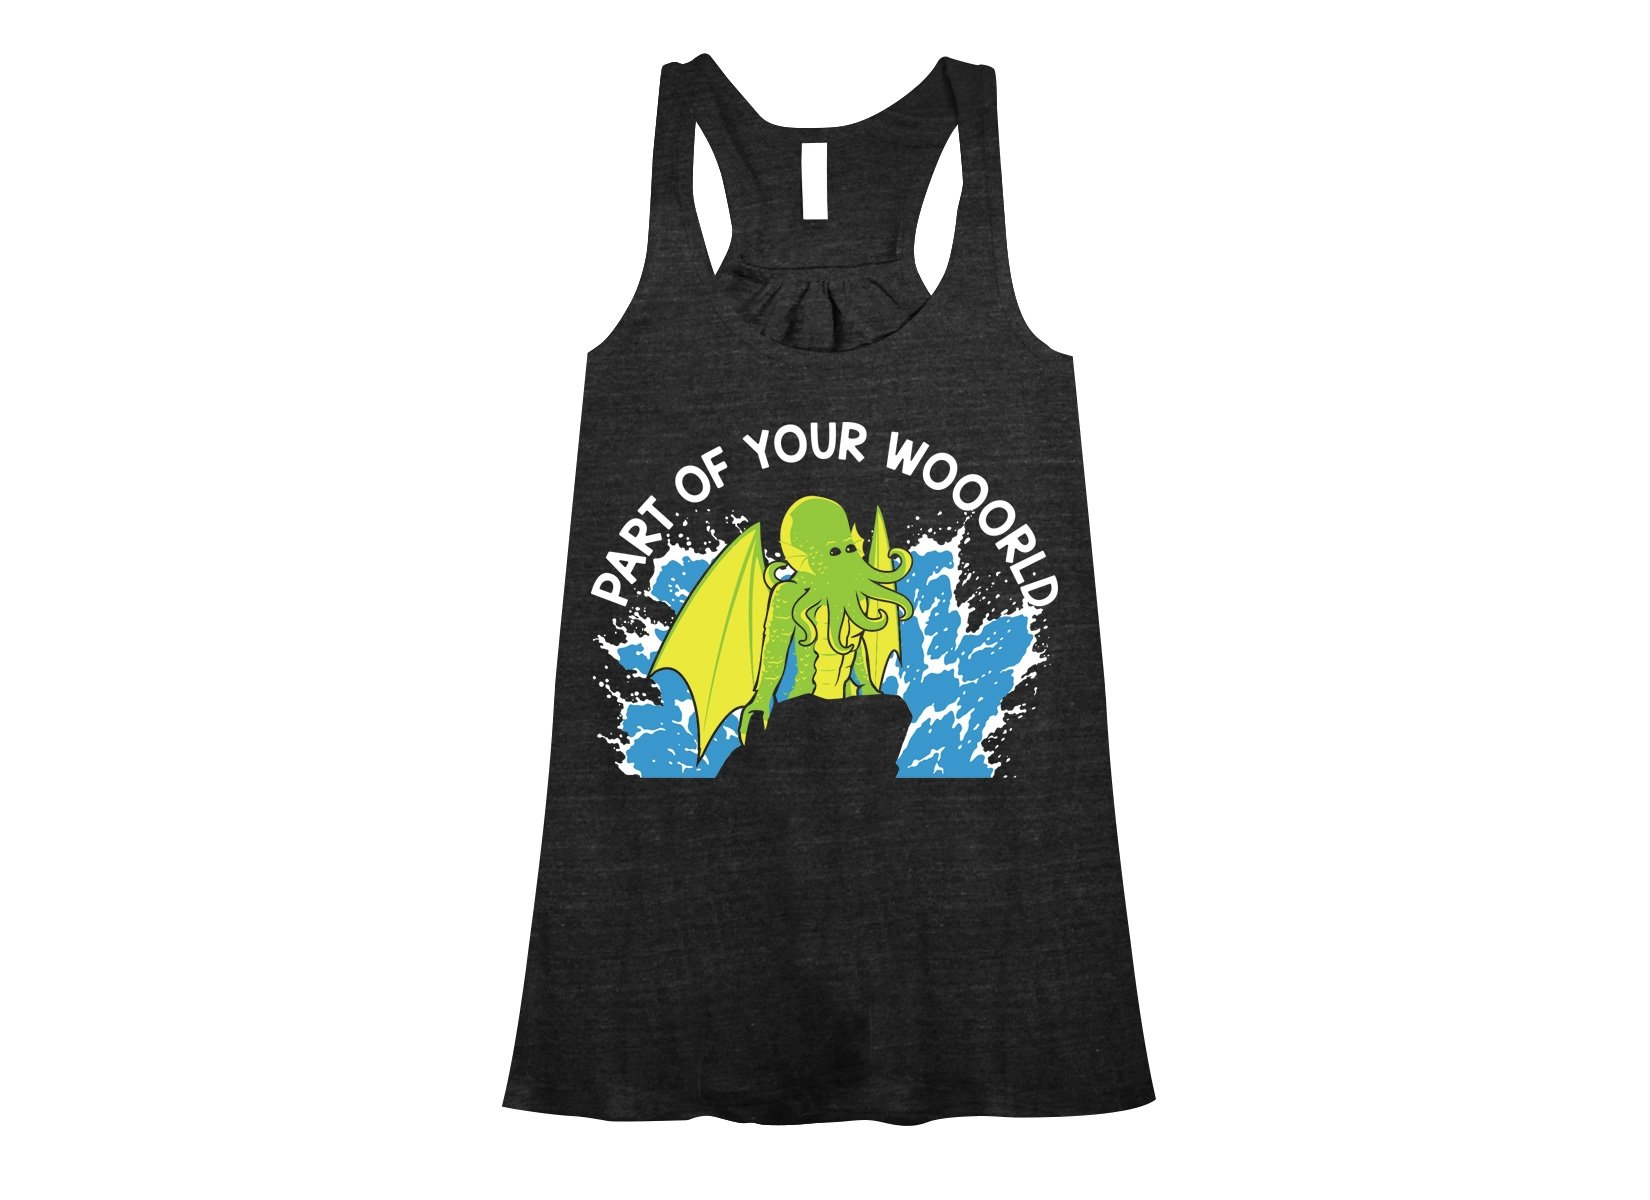 Part Of Your World on Womens Tanks T-Shirt